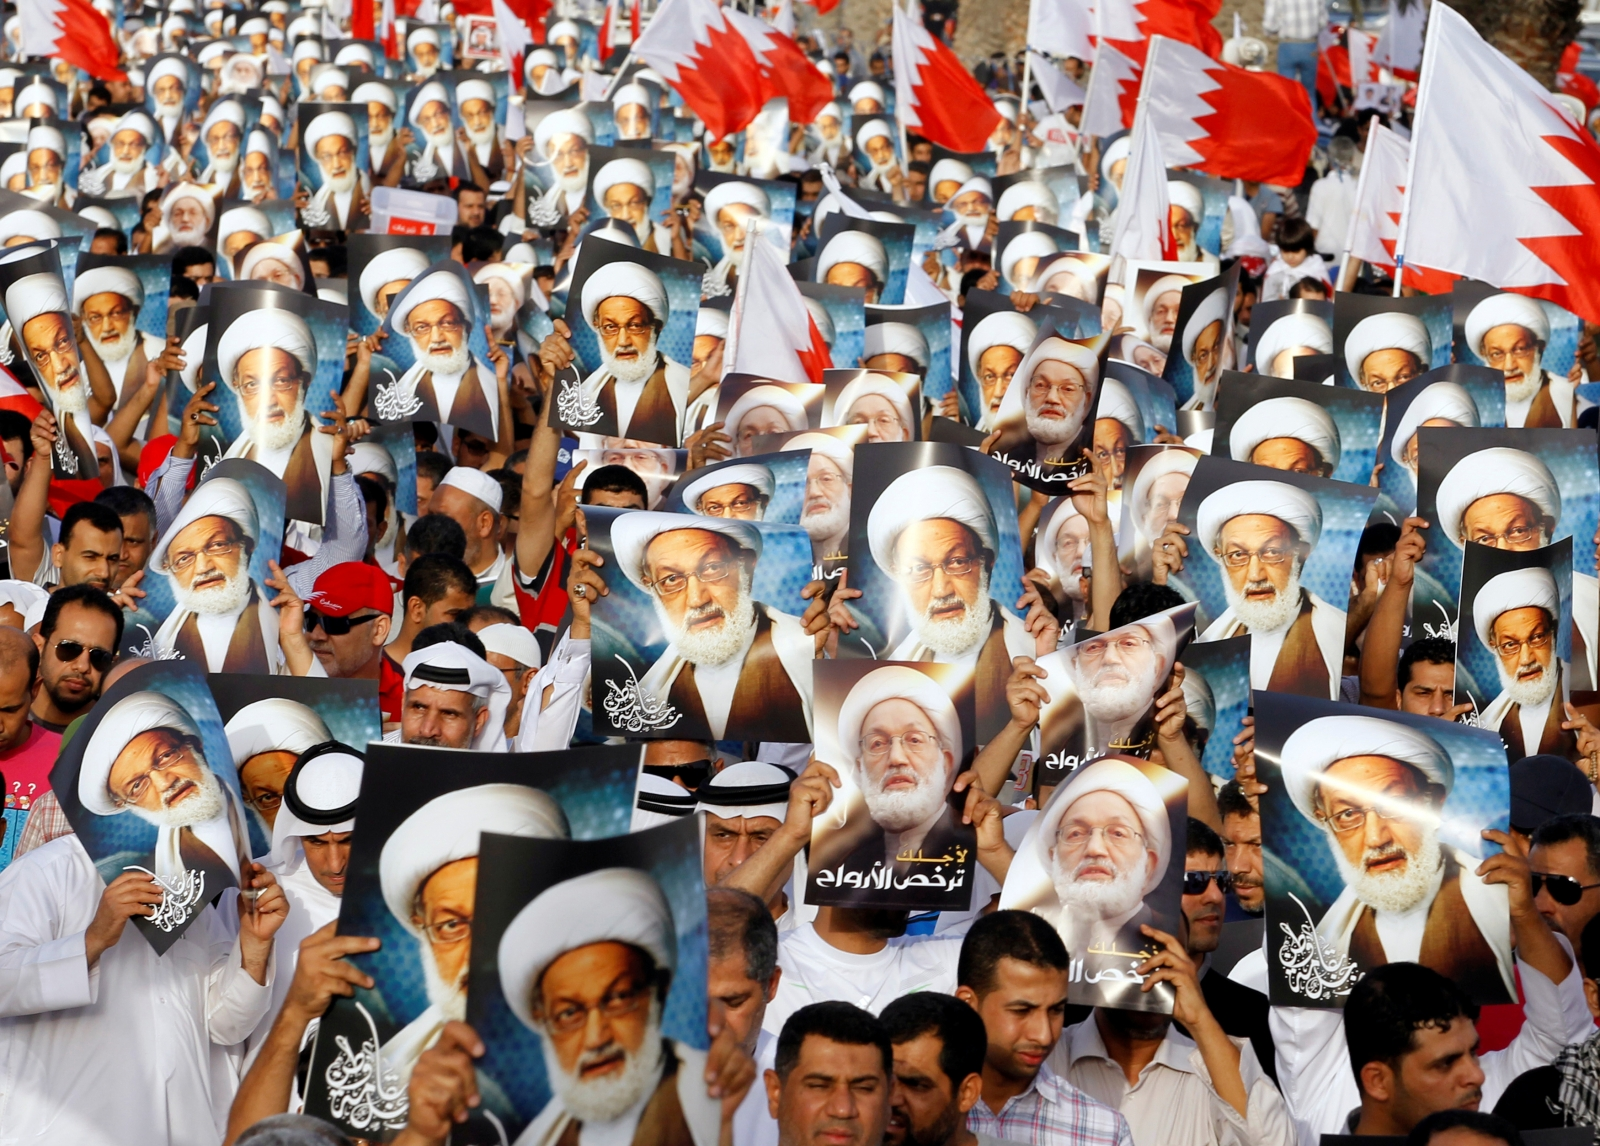 Bahrain Shia cleric and Iran